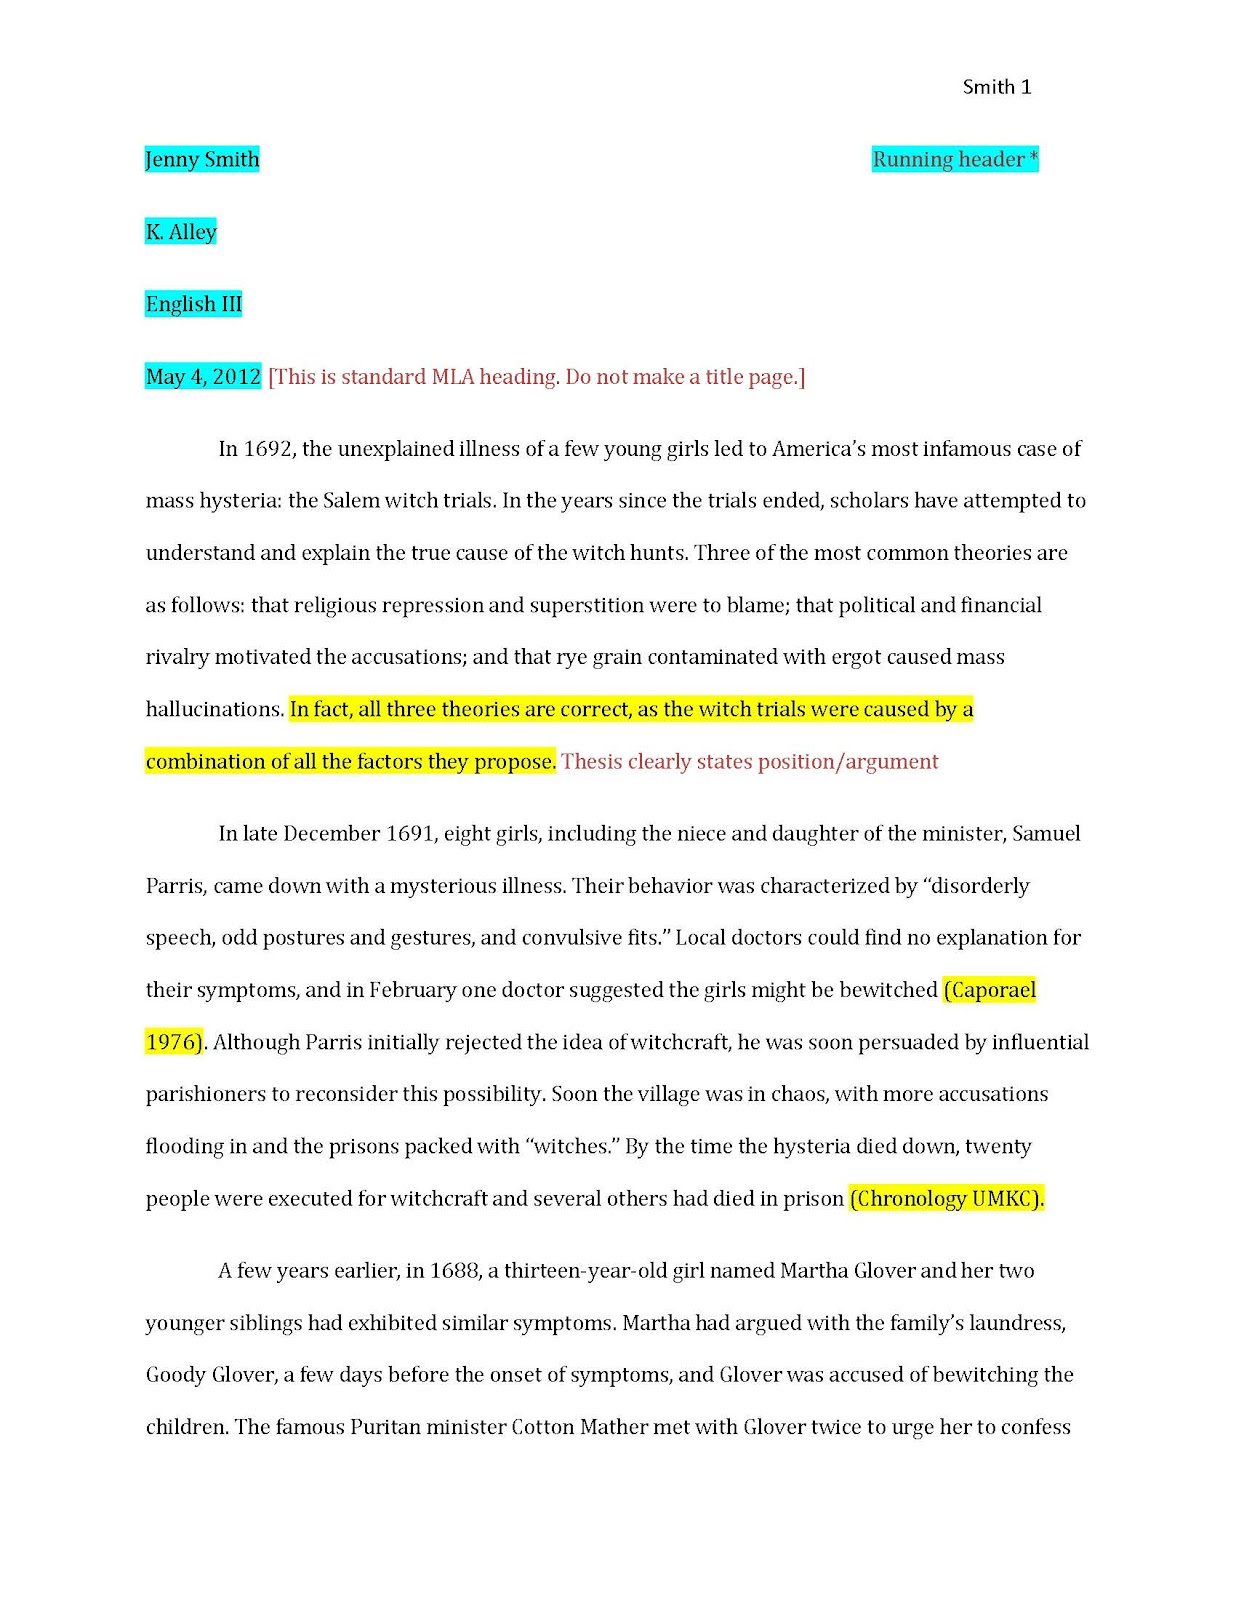 002 Citation Research Papers Paper Examplepaper Page 1 Incredible Example In Text Apa Full